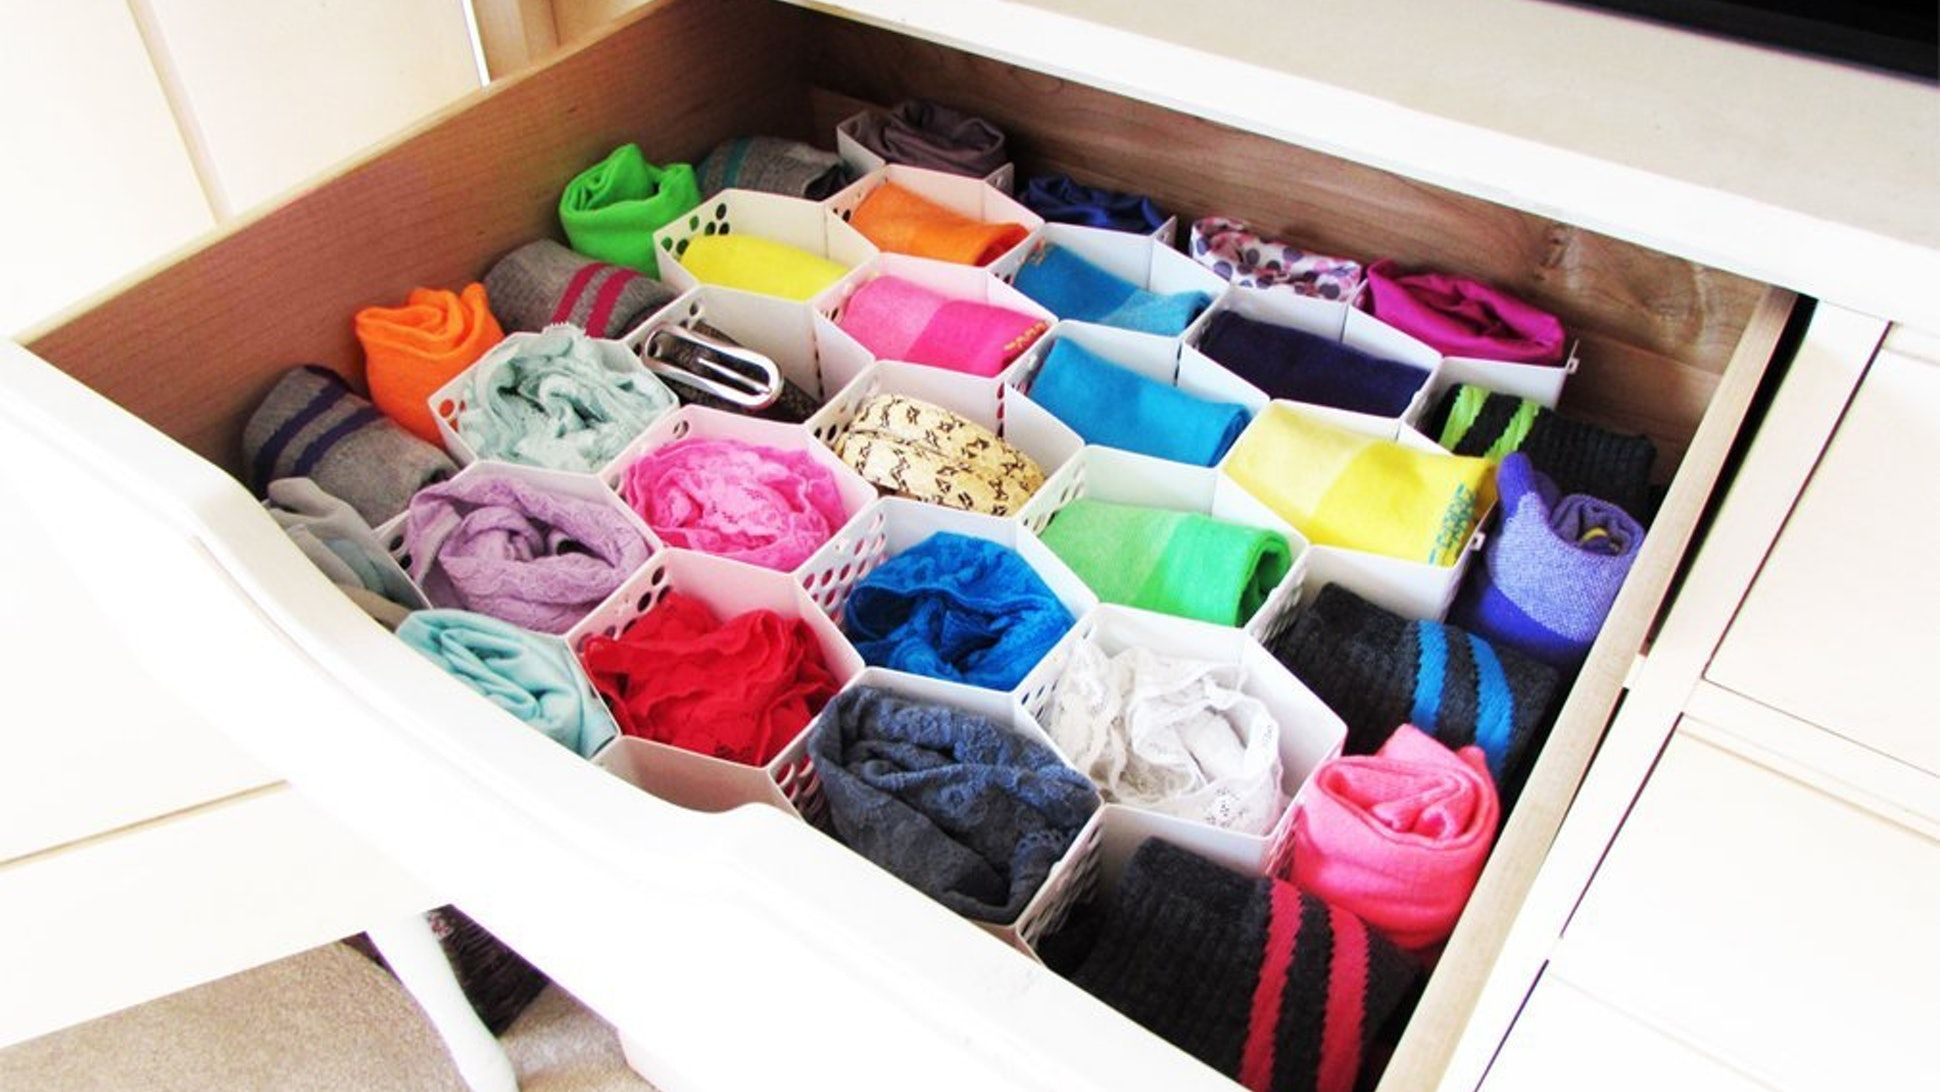 Ranger Ses Collants 8 Genius Tips For Organizing Your Underwear Drawer In 2019